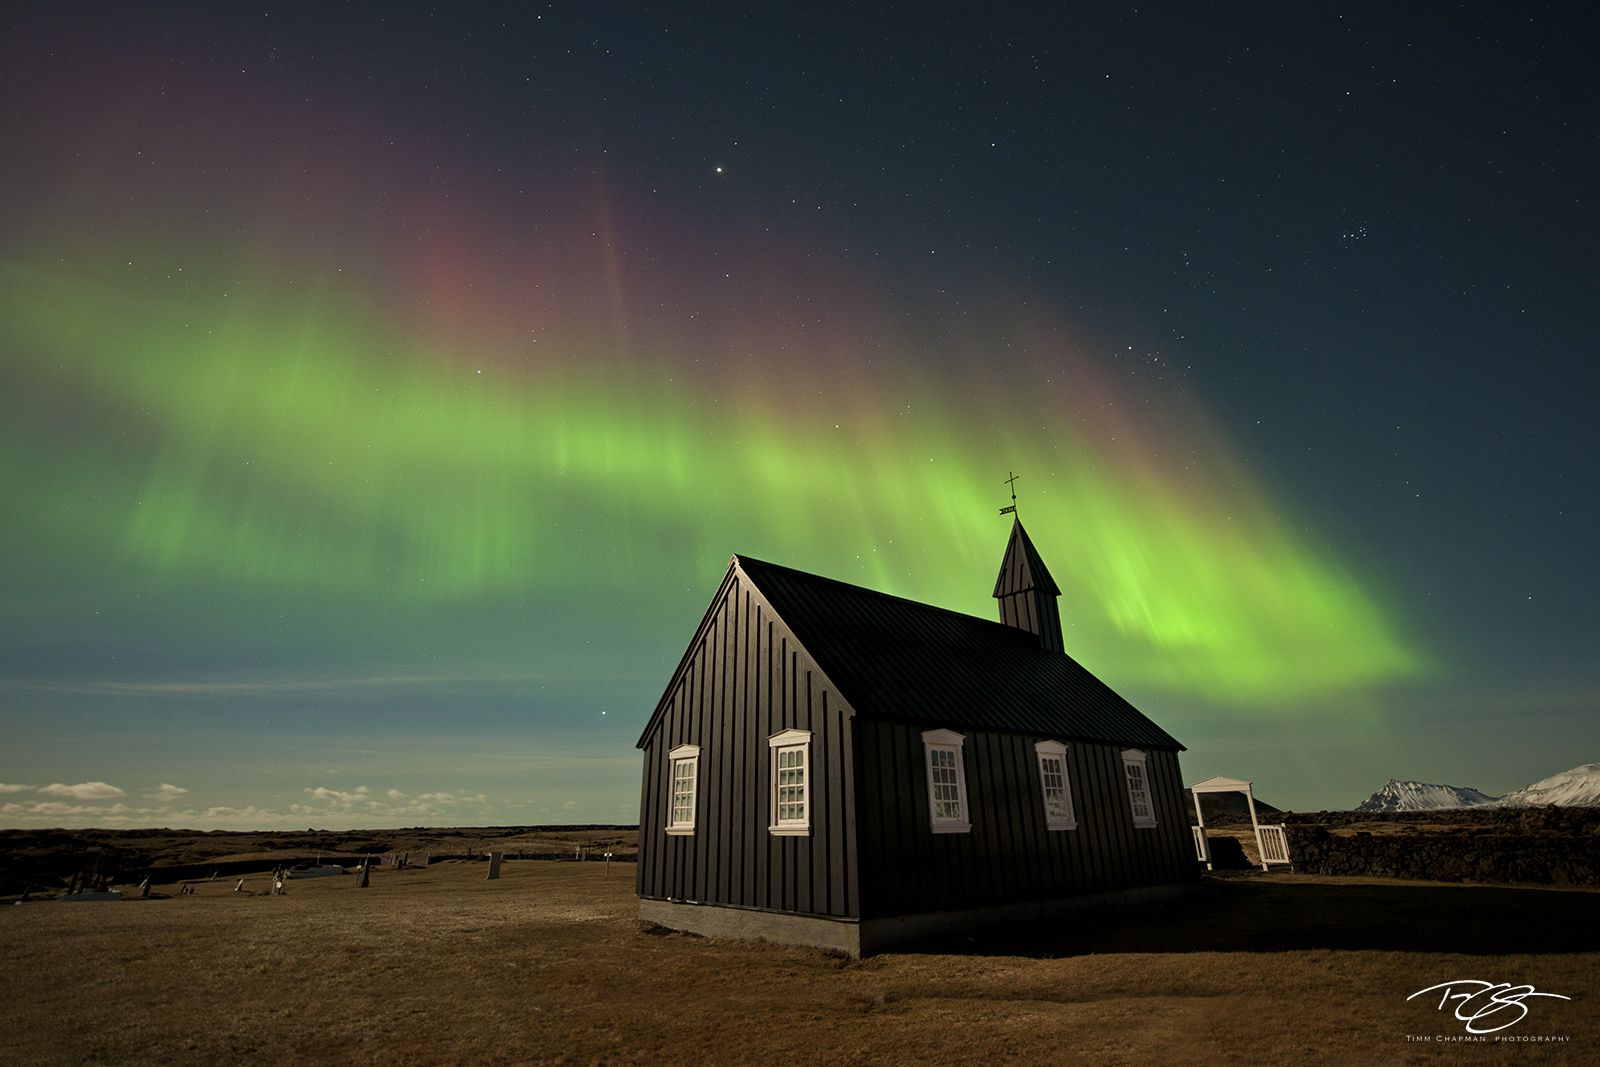 Iceland, aurora, borealis, green, violet, stars, northern lights, ribbon, spirit, coronal mass ejection, solar flare, energy, nordic, arctic, church, black, budir, Búðir, cross, steeple, small church, photo